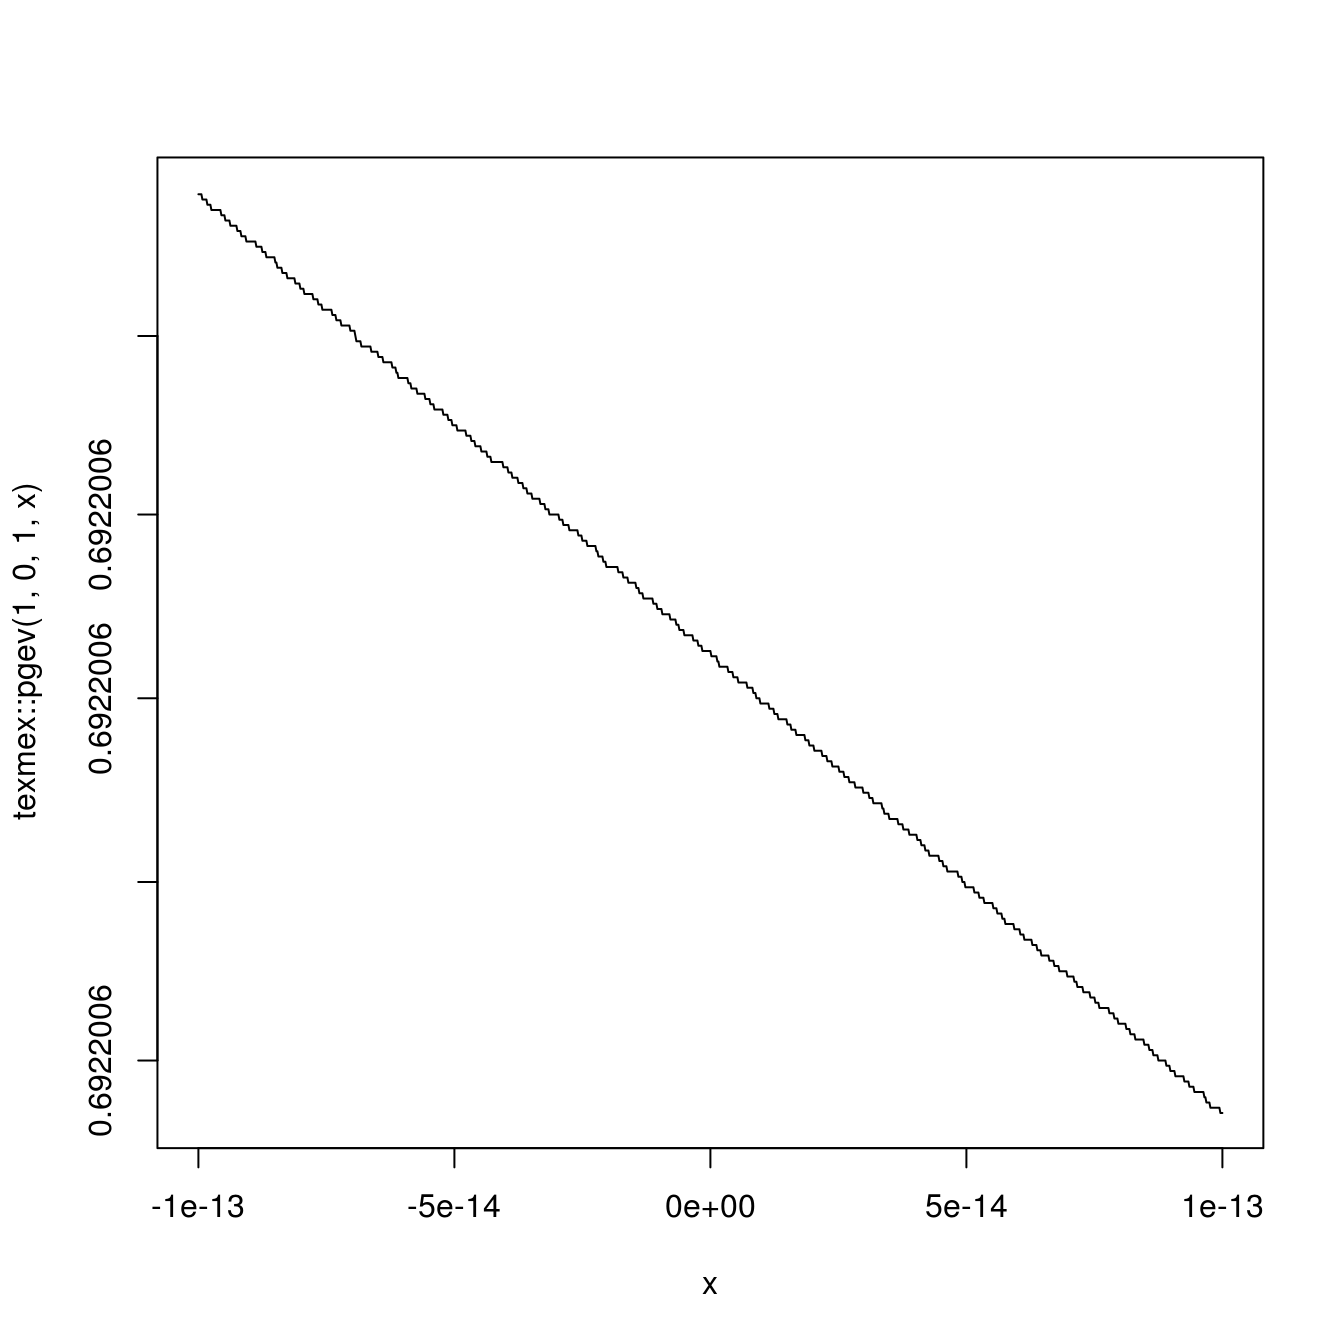 Two implementations of GEV distribution function when $\xi$ is close to zero.